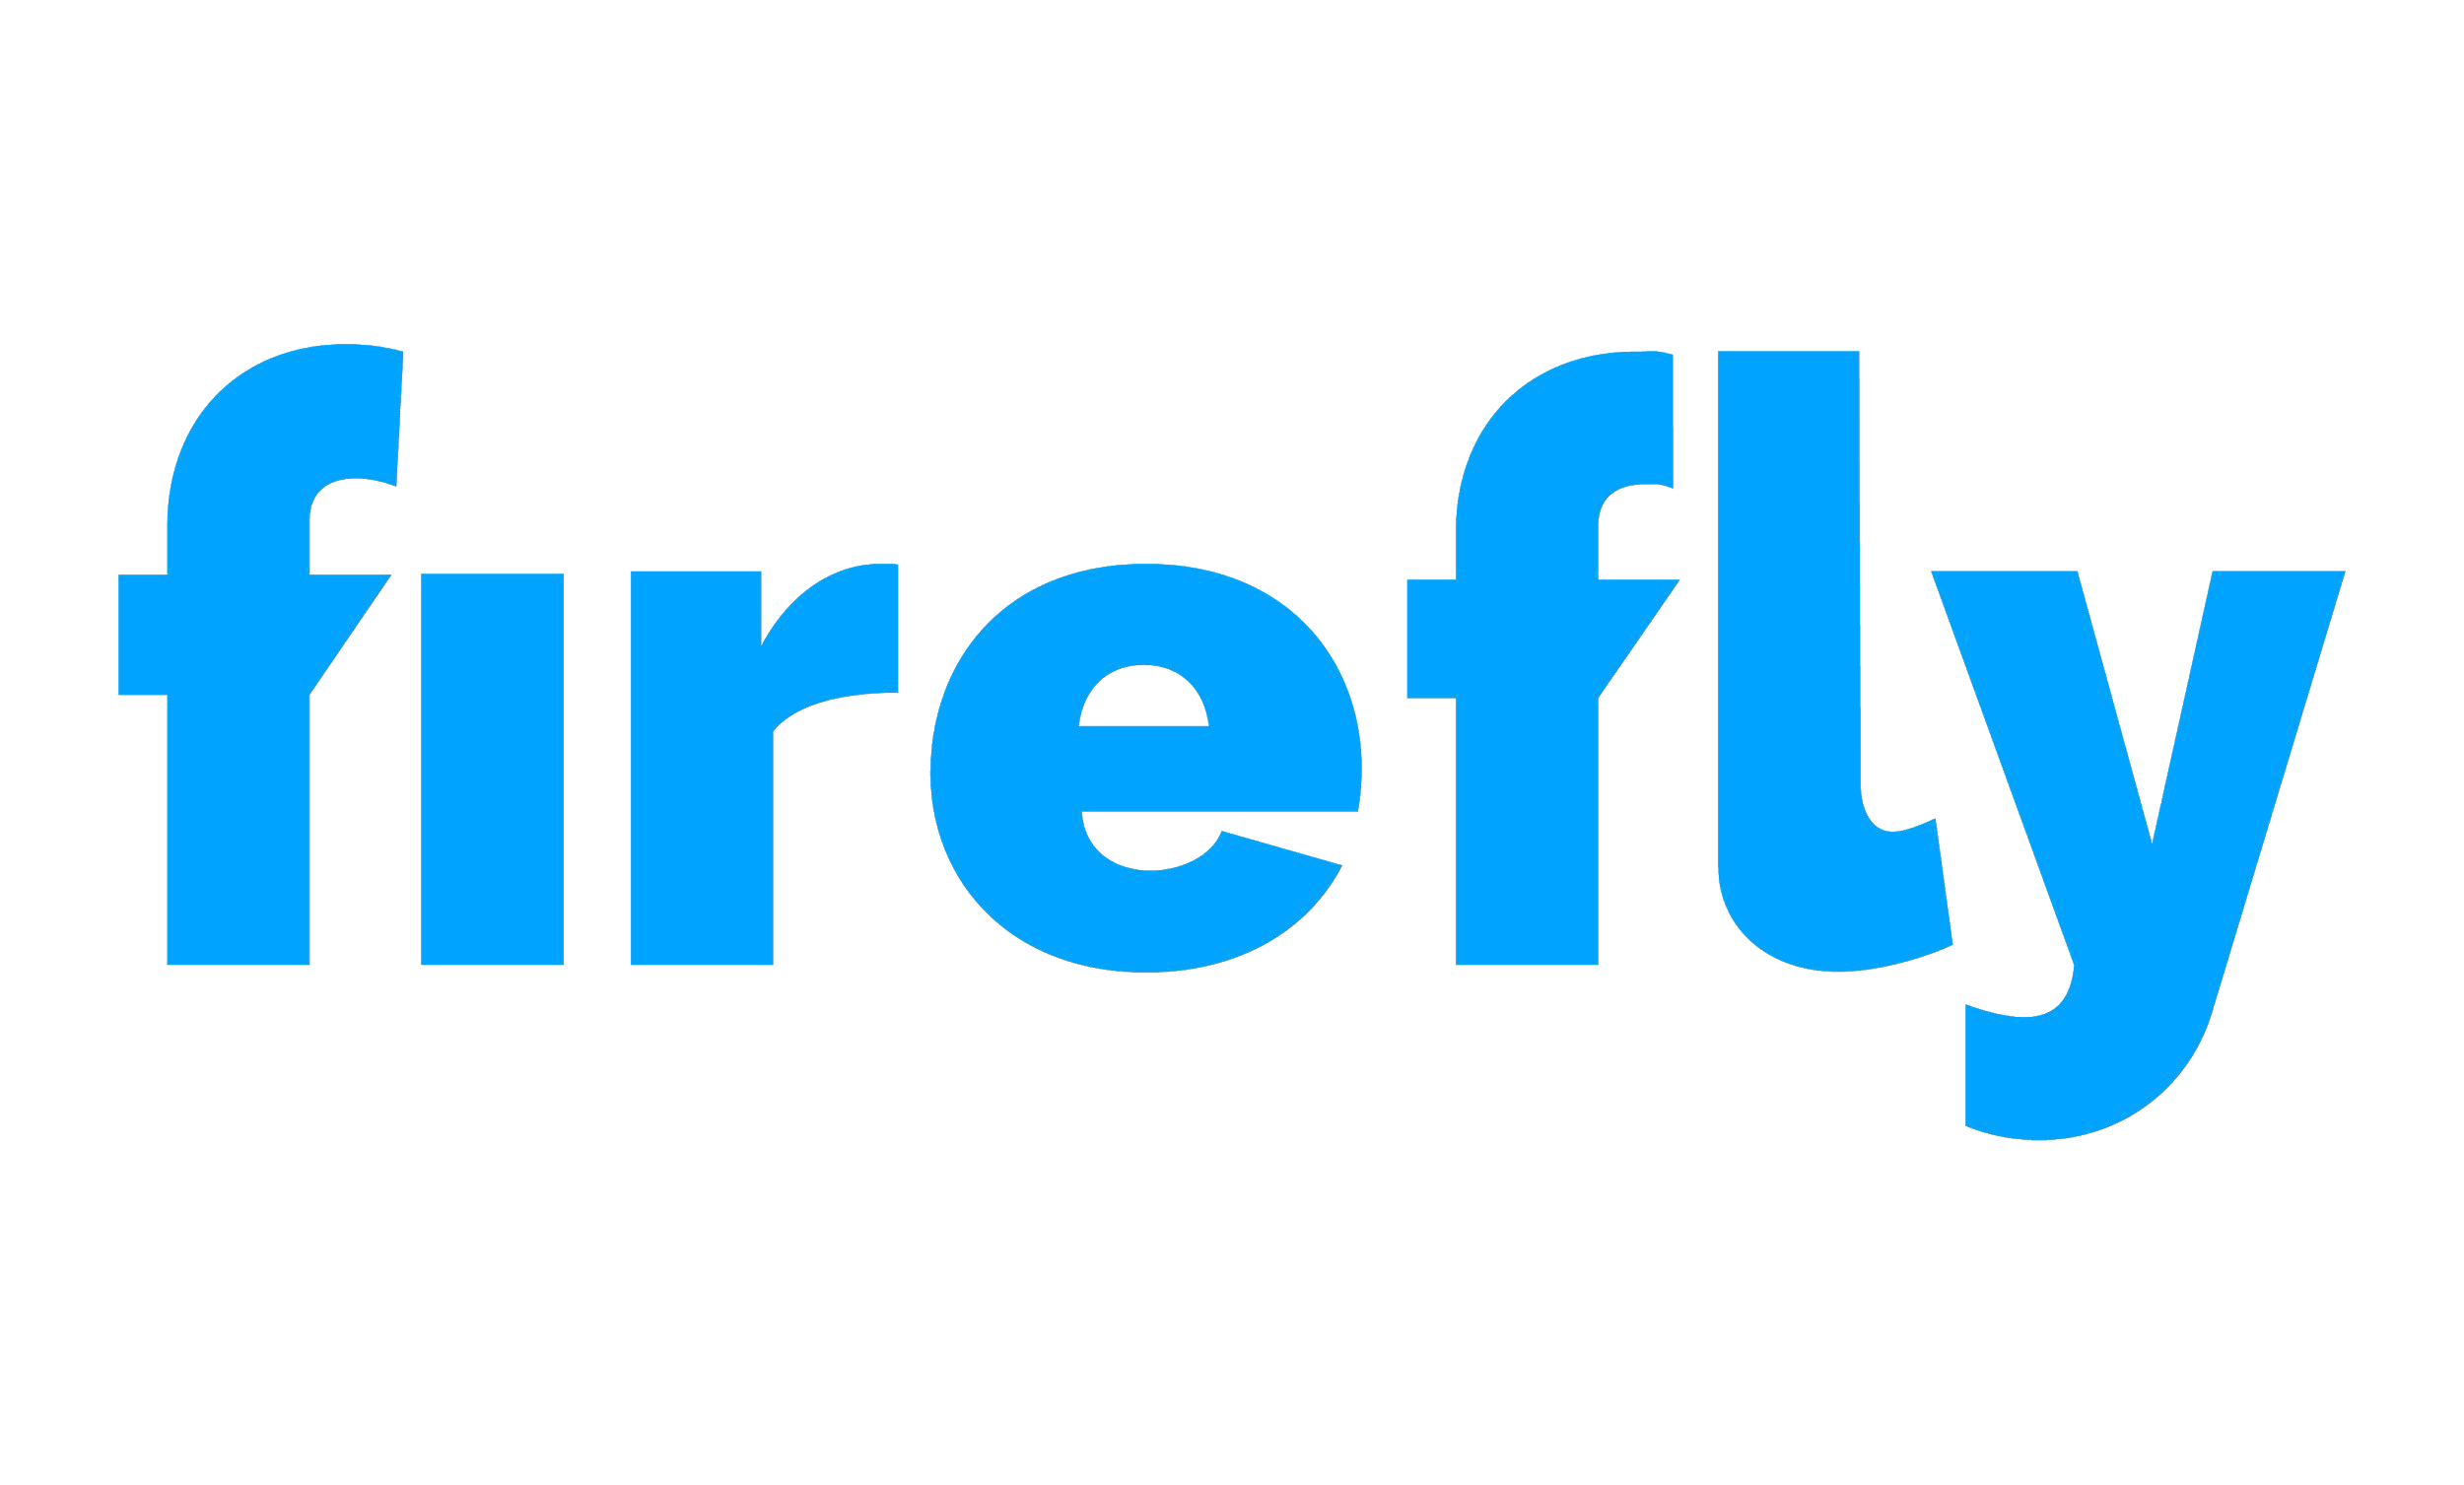 firefly_logo.png